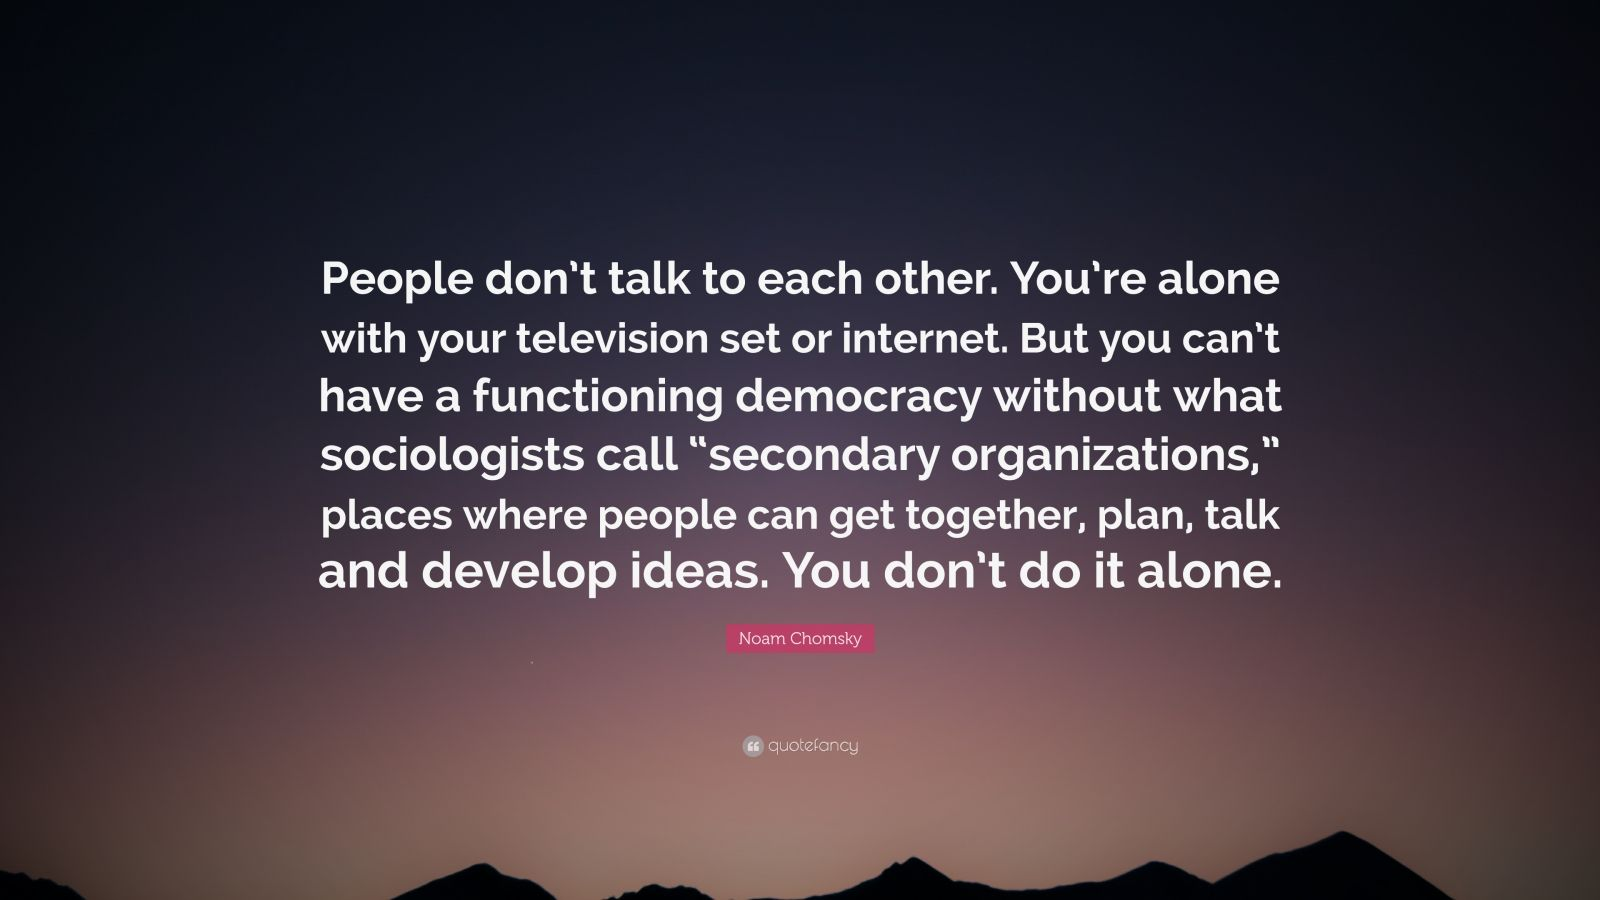 """Noam Chomsky Quote: """"People don't talk to each other. You're alone with your television set or internet. But you can't have a functioning democracy without what sociologists call """"secondary organizations,"""" places where people can get together, plan, talk and develop ideas. You don't do it alone."""""""